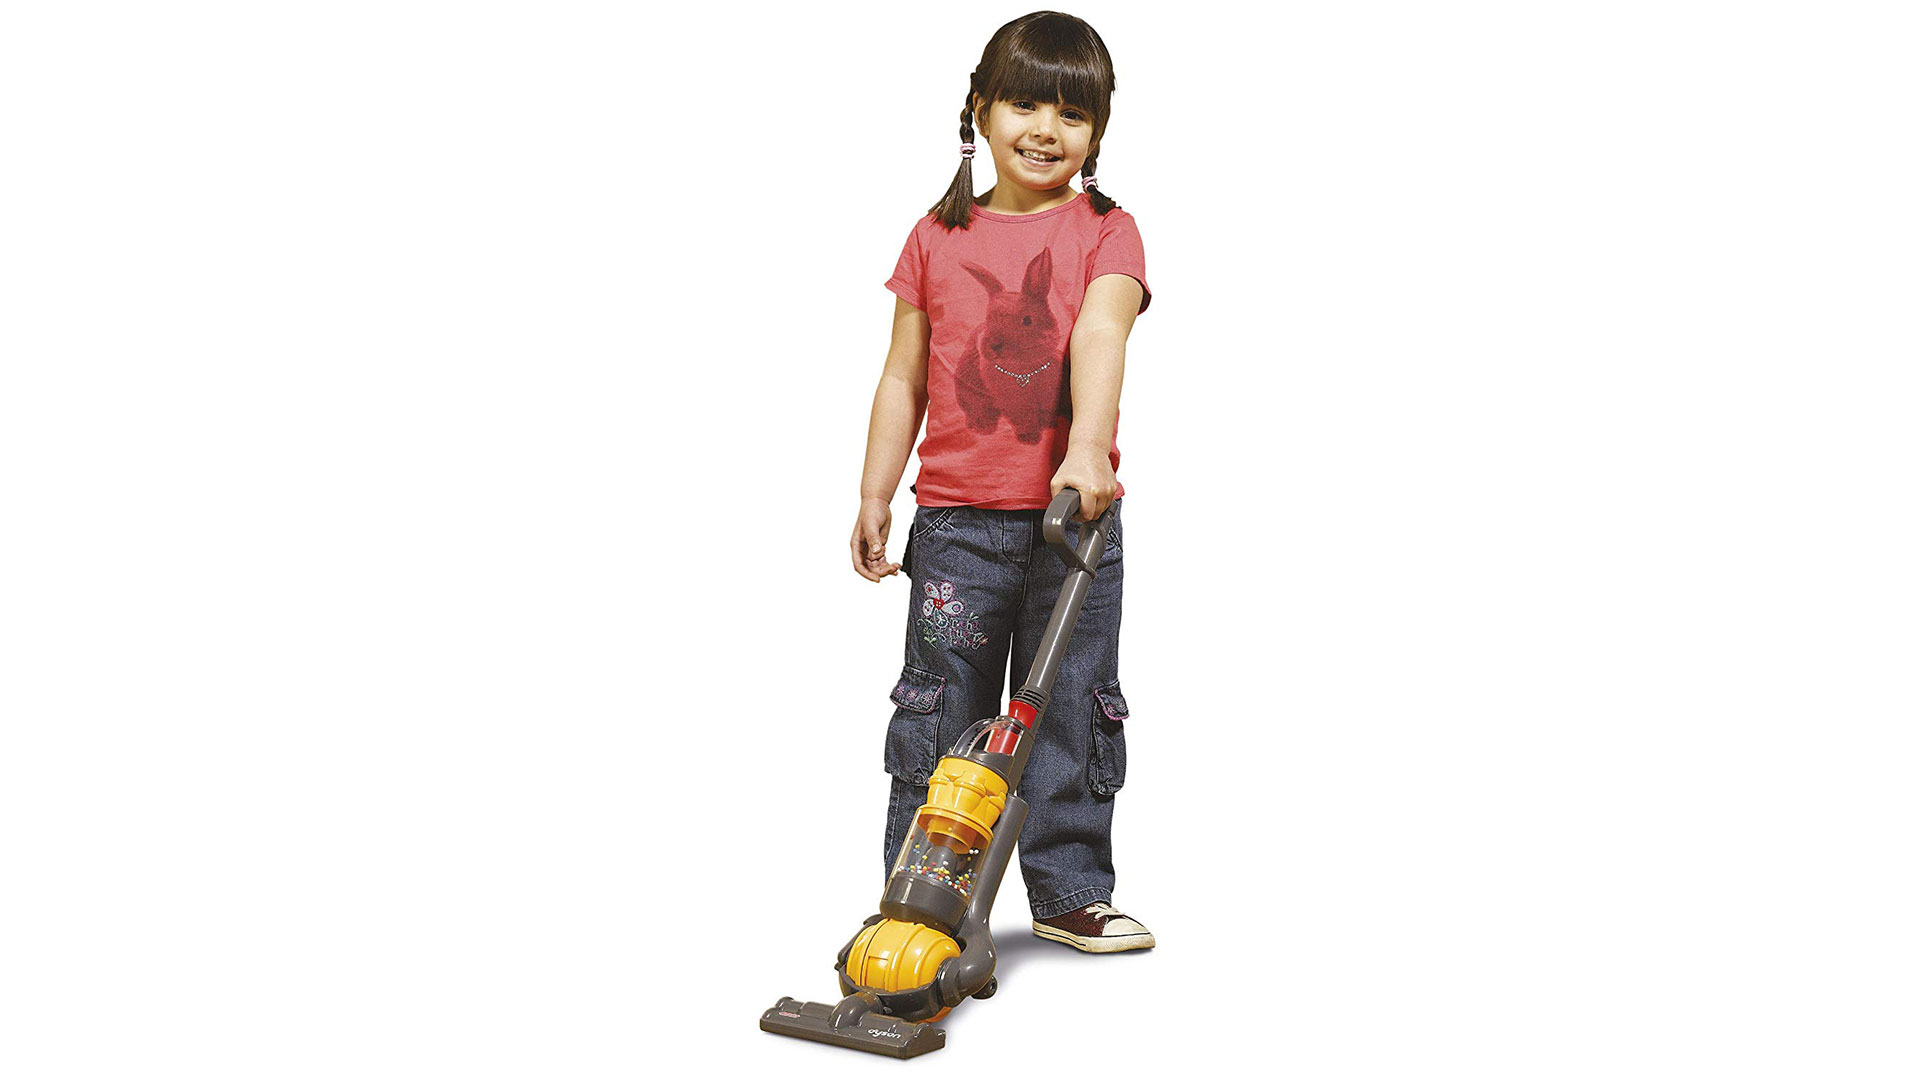 Dyson Vacuum Cleaner Toy with Girl